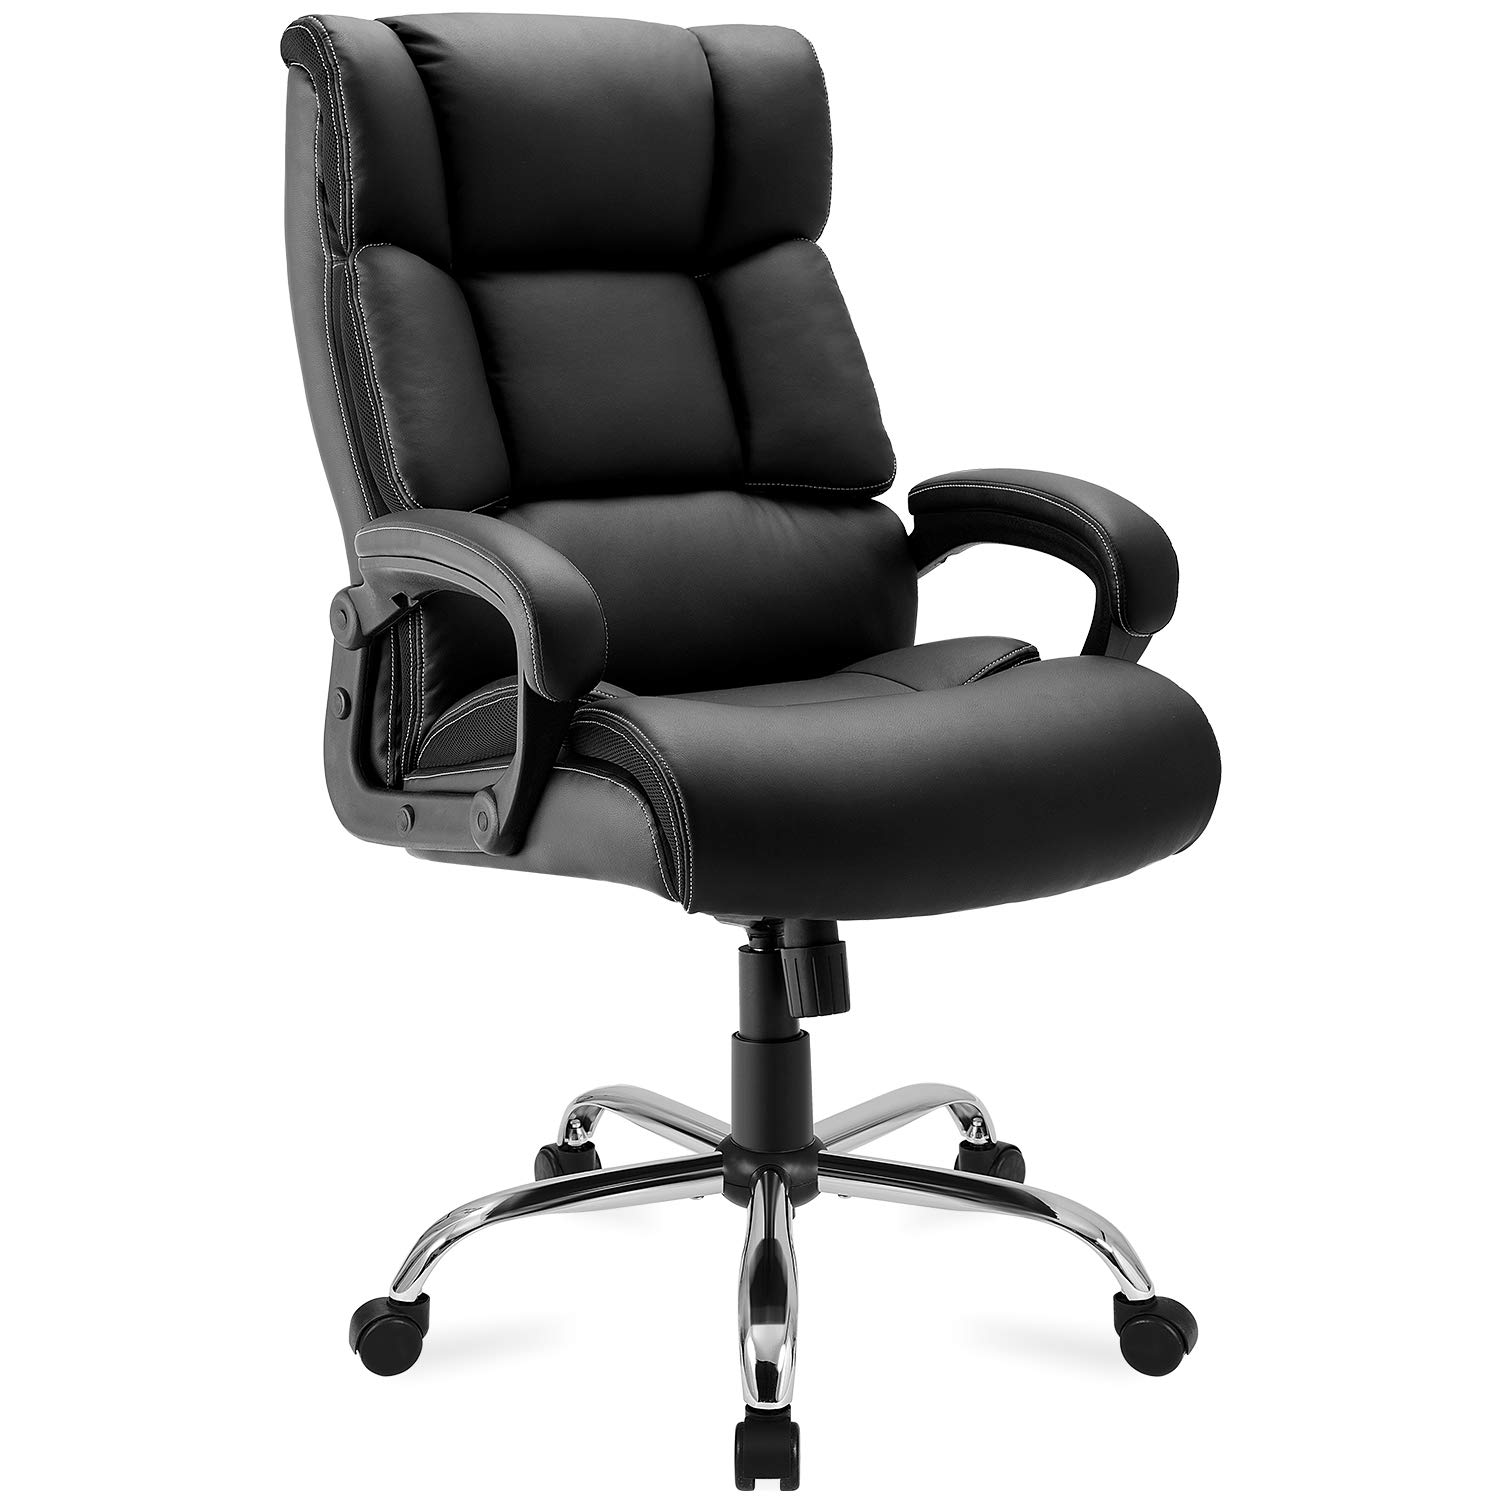 Office High Back Desk Computer Ergonomic Task Executive Chair with Spring Bag/Memory Foam/Quality Leather for Home Furniture, Black/PU by MOOSENG